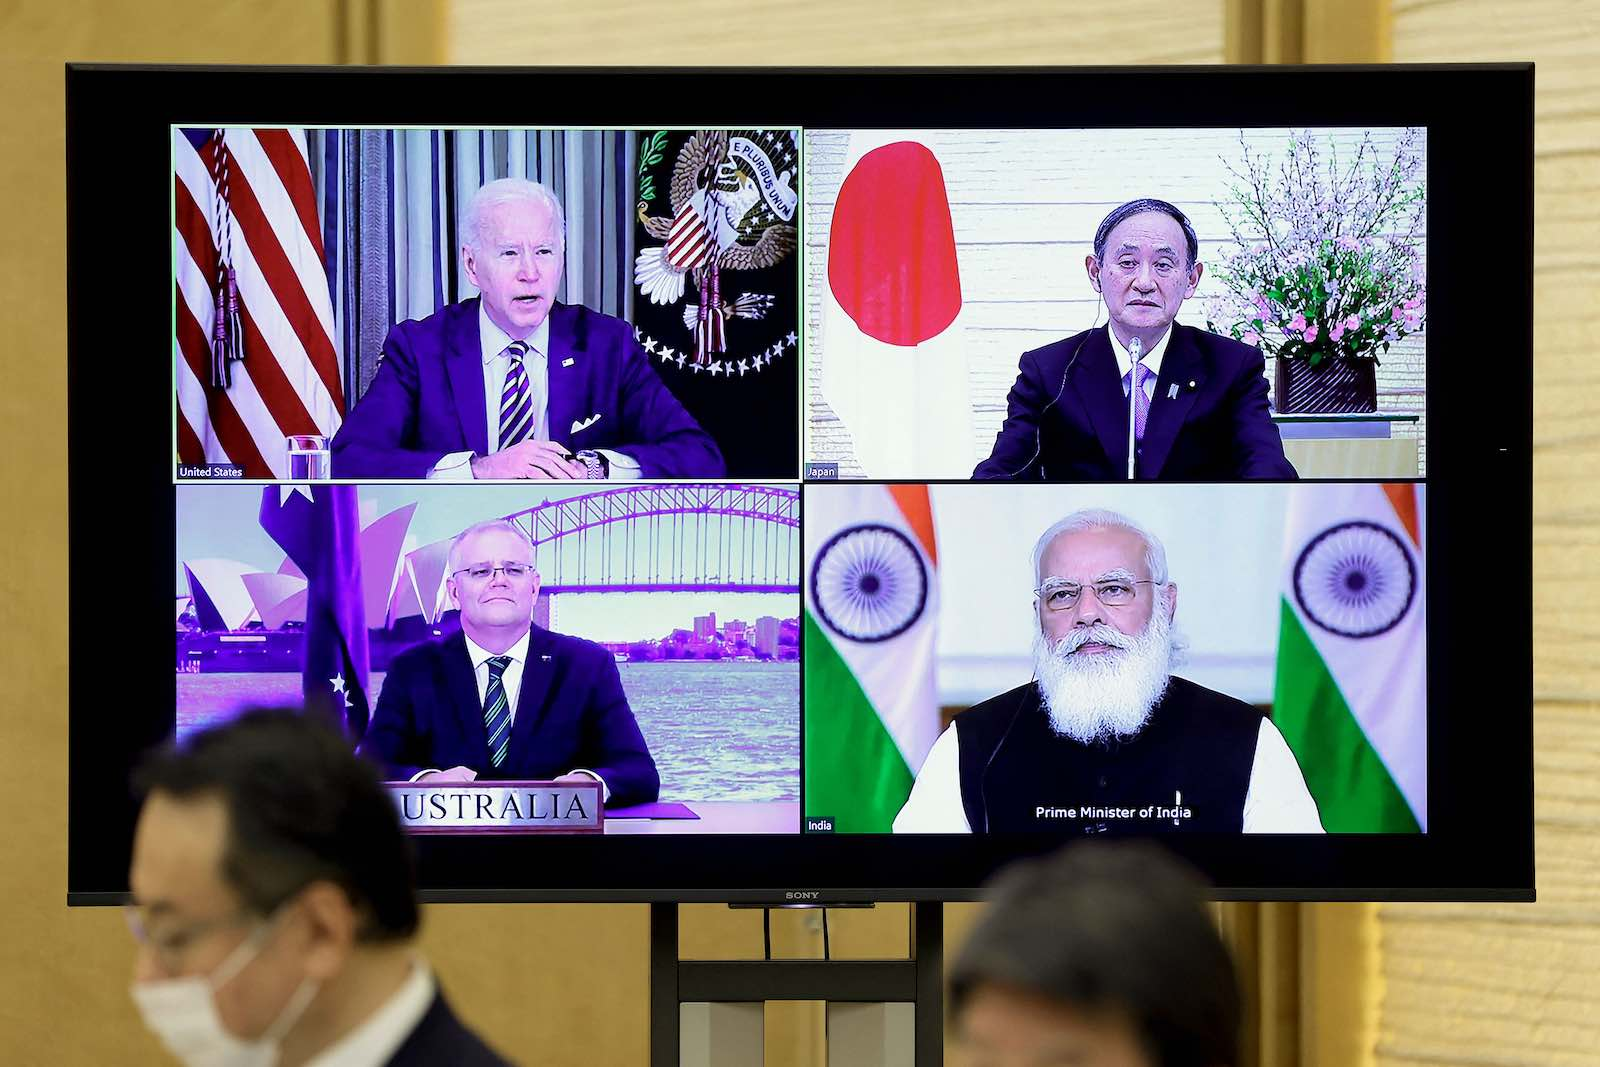 A monitor displays the leaders of the US, Japan, India and Australia during a virtual Quadrilateral Security Dialogue meeting, 12 March in Tokyo (Kiyoshi Ota/Pool/AFP via Getty Images)